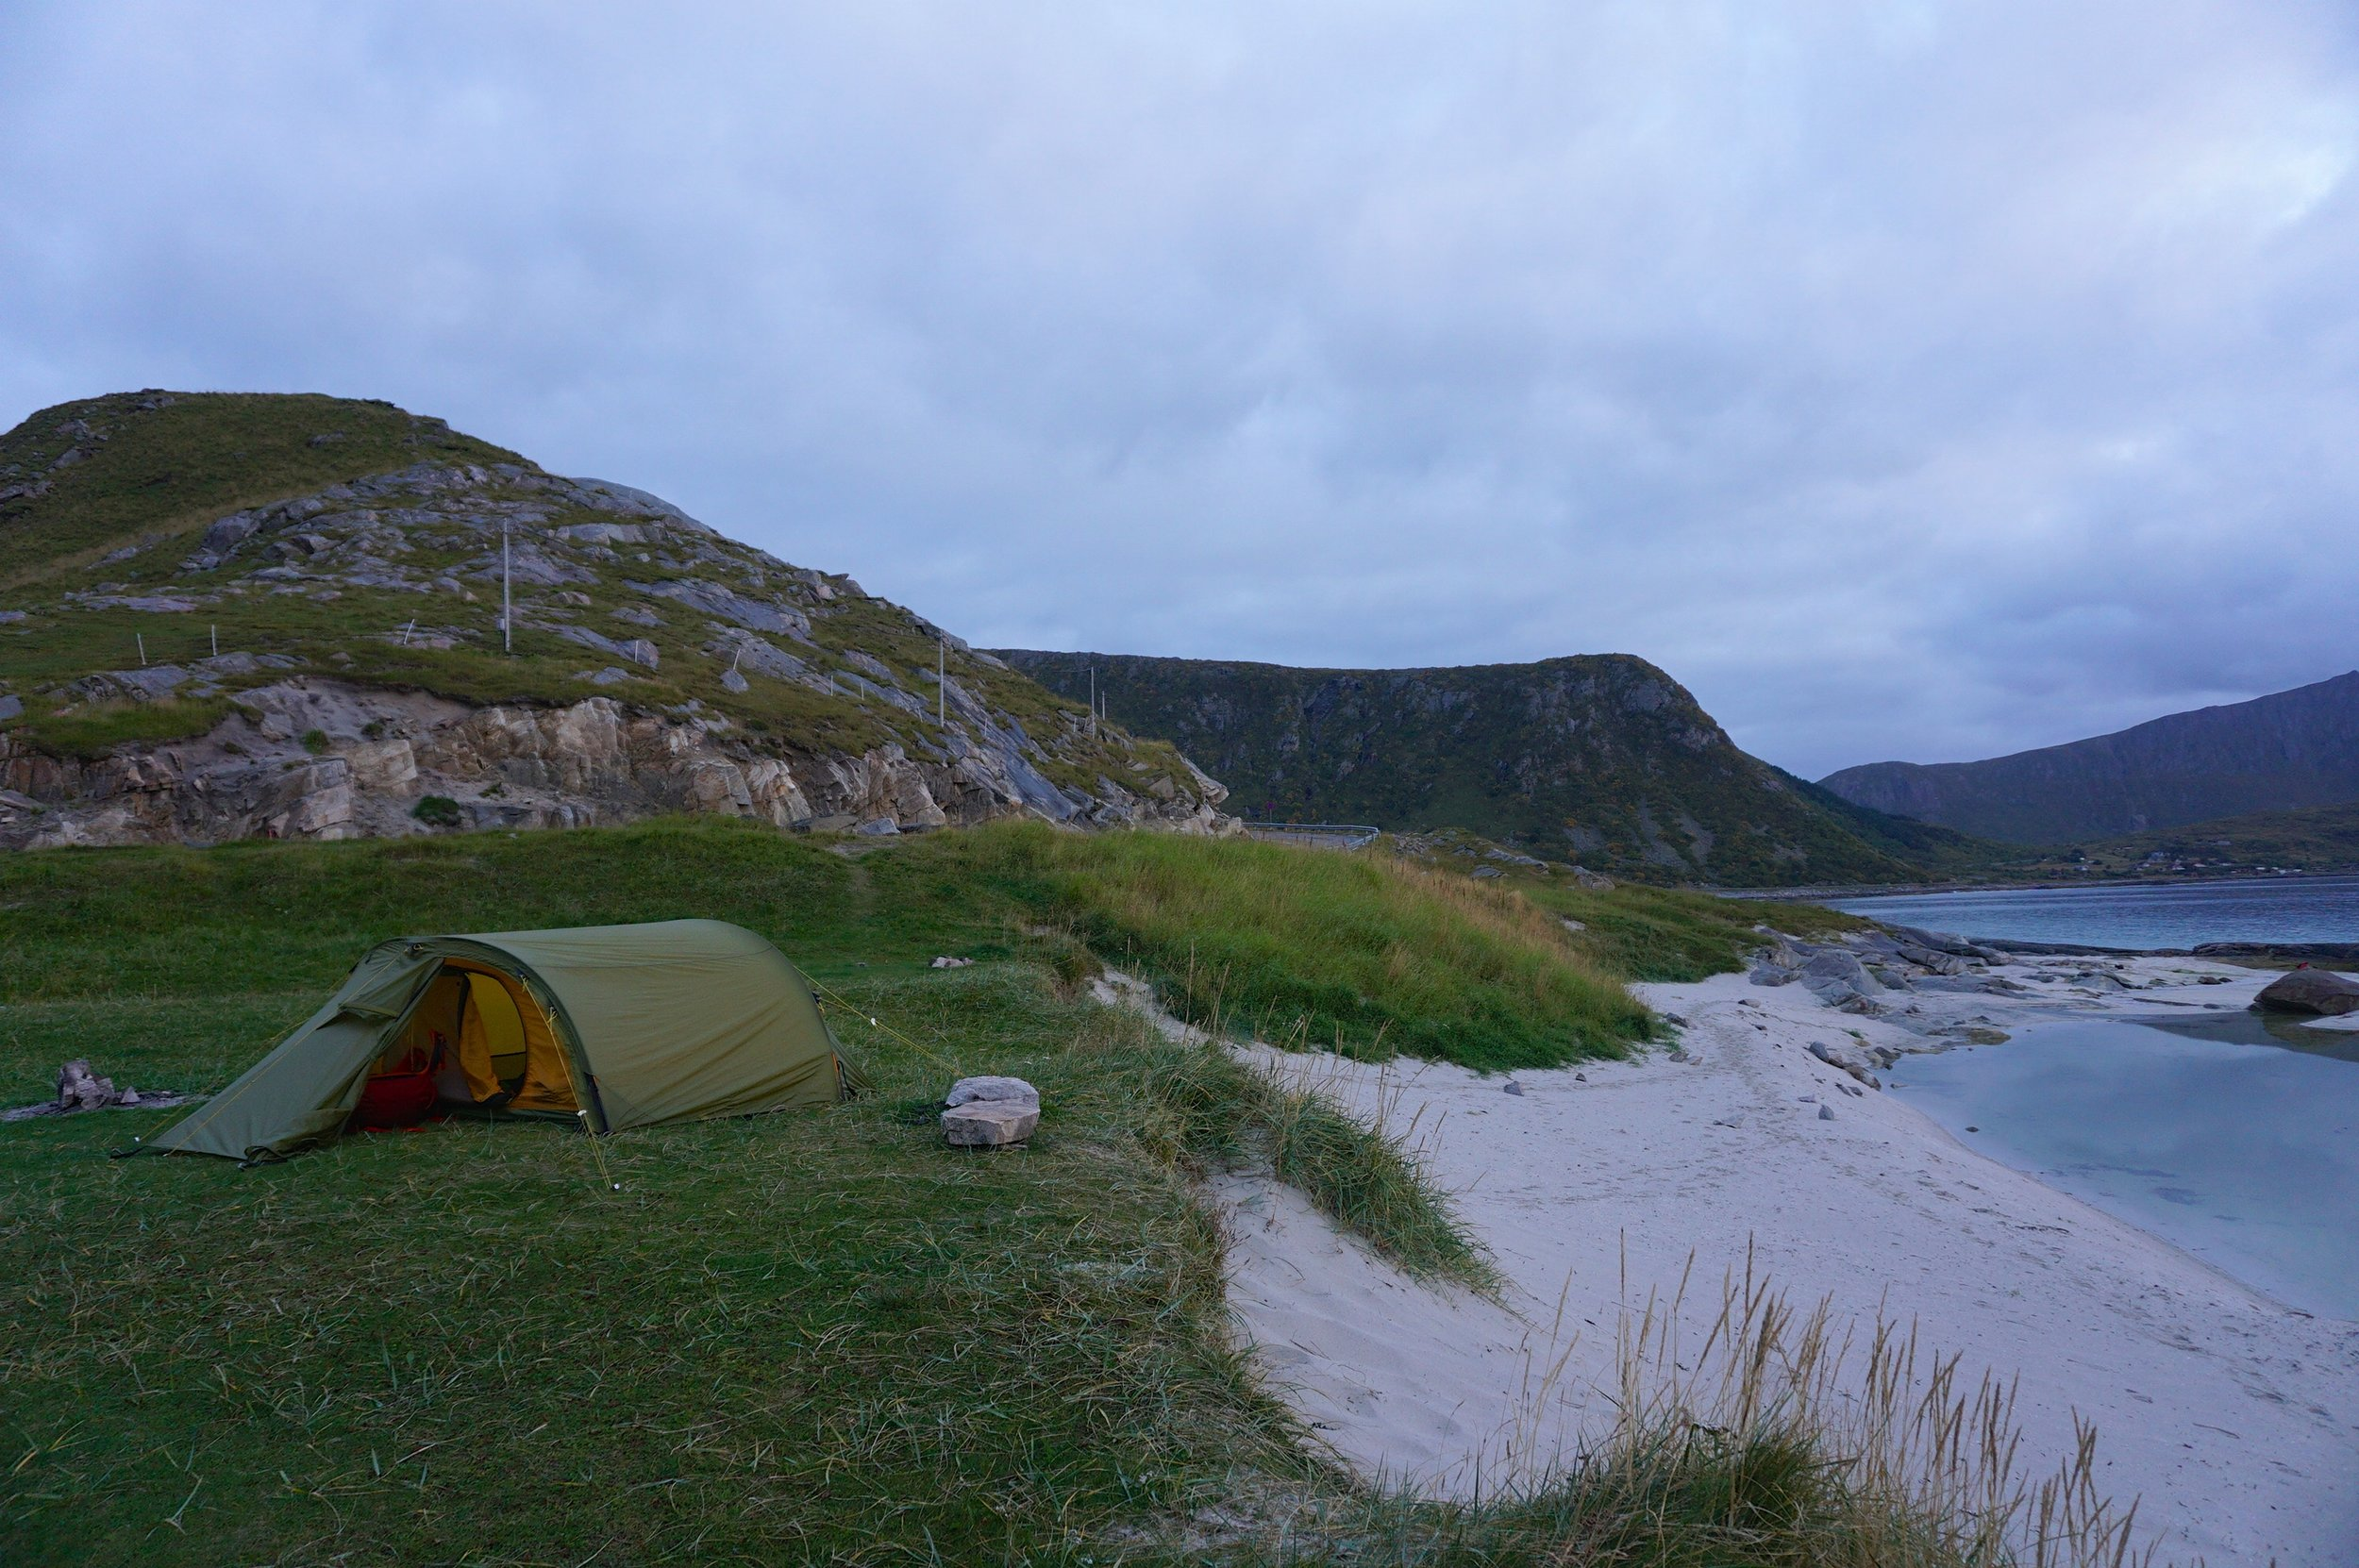 Camping spots don't get much better than this!